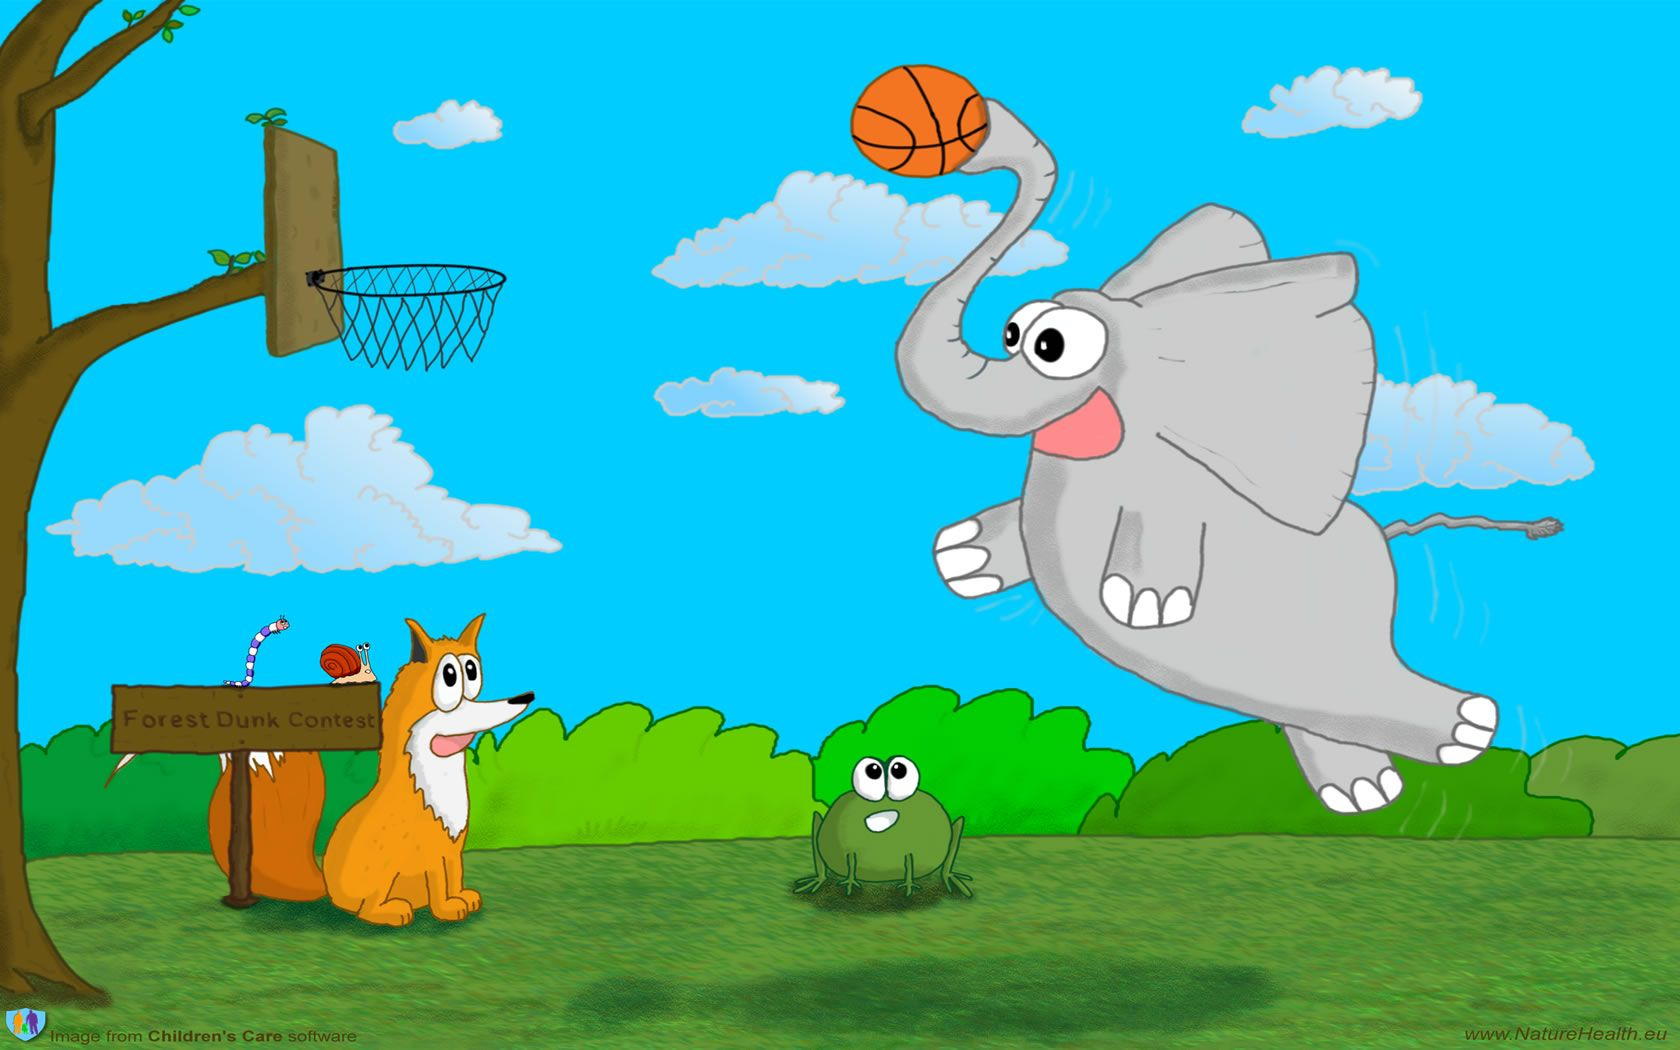 Basketball Cartoon Wallpapers: Basketball Cartoon Wallpapers